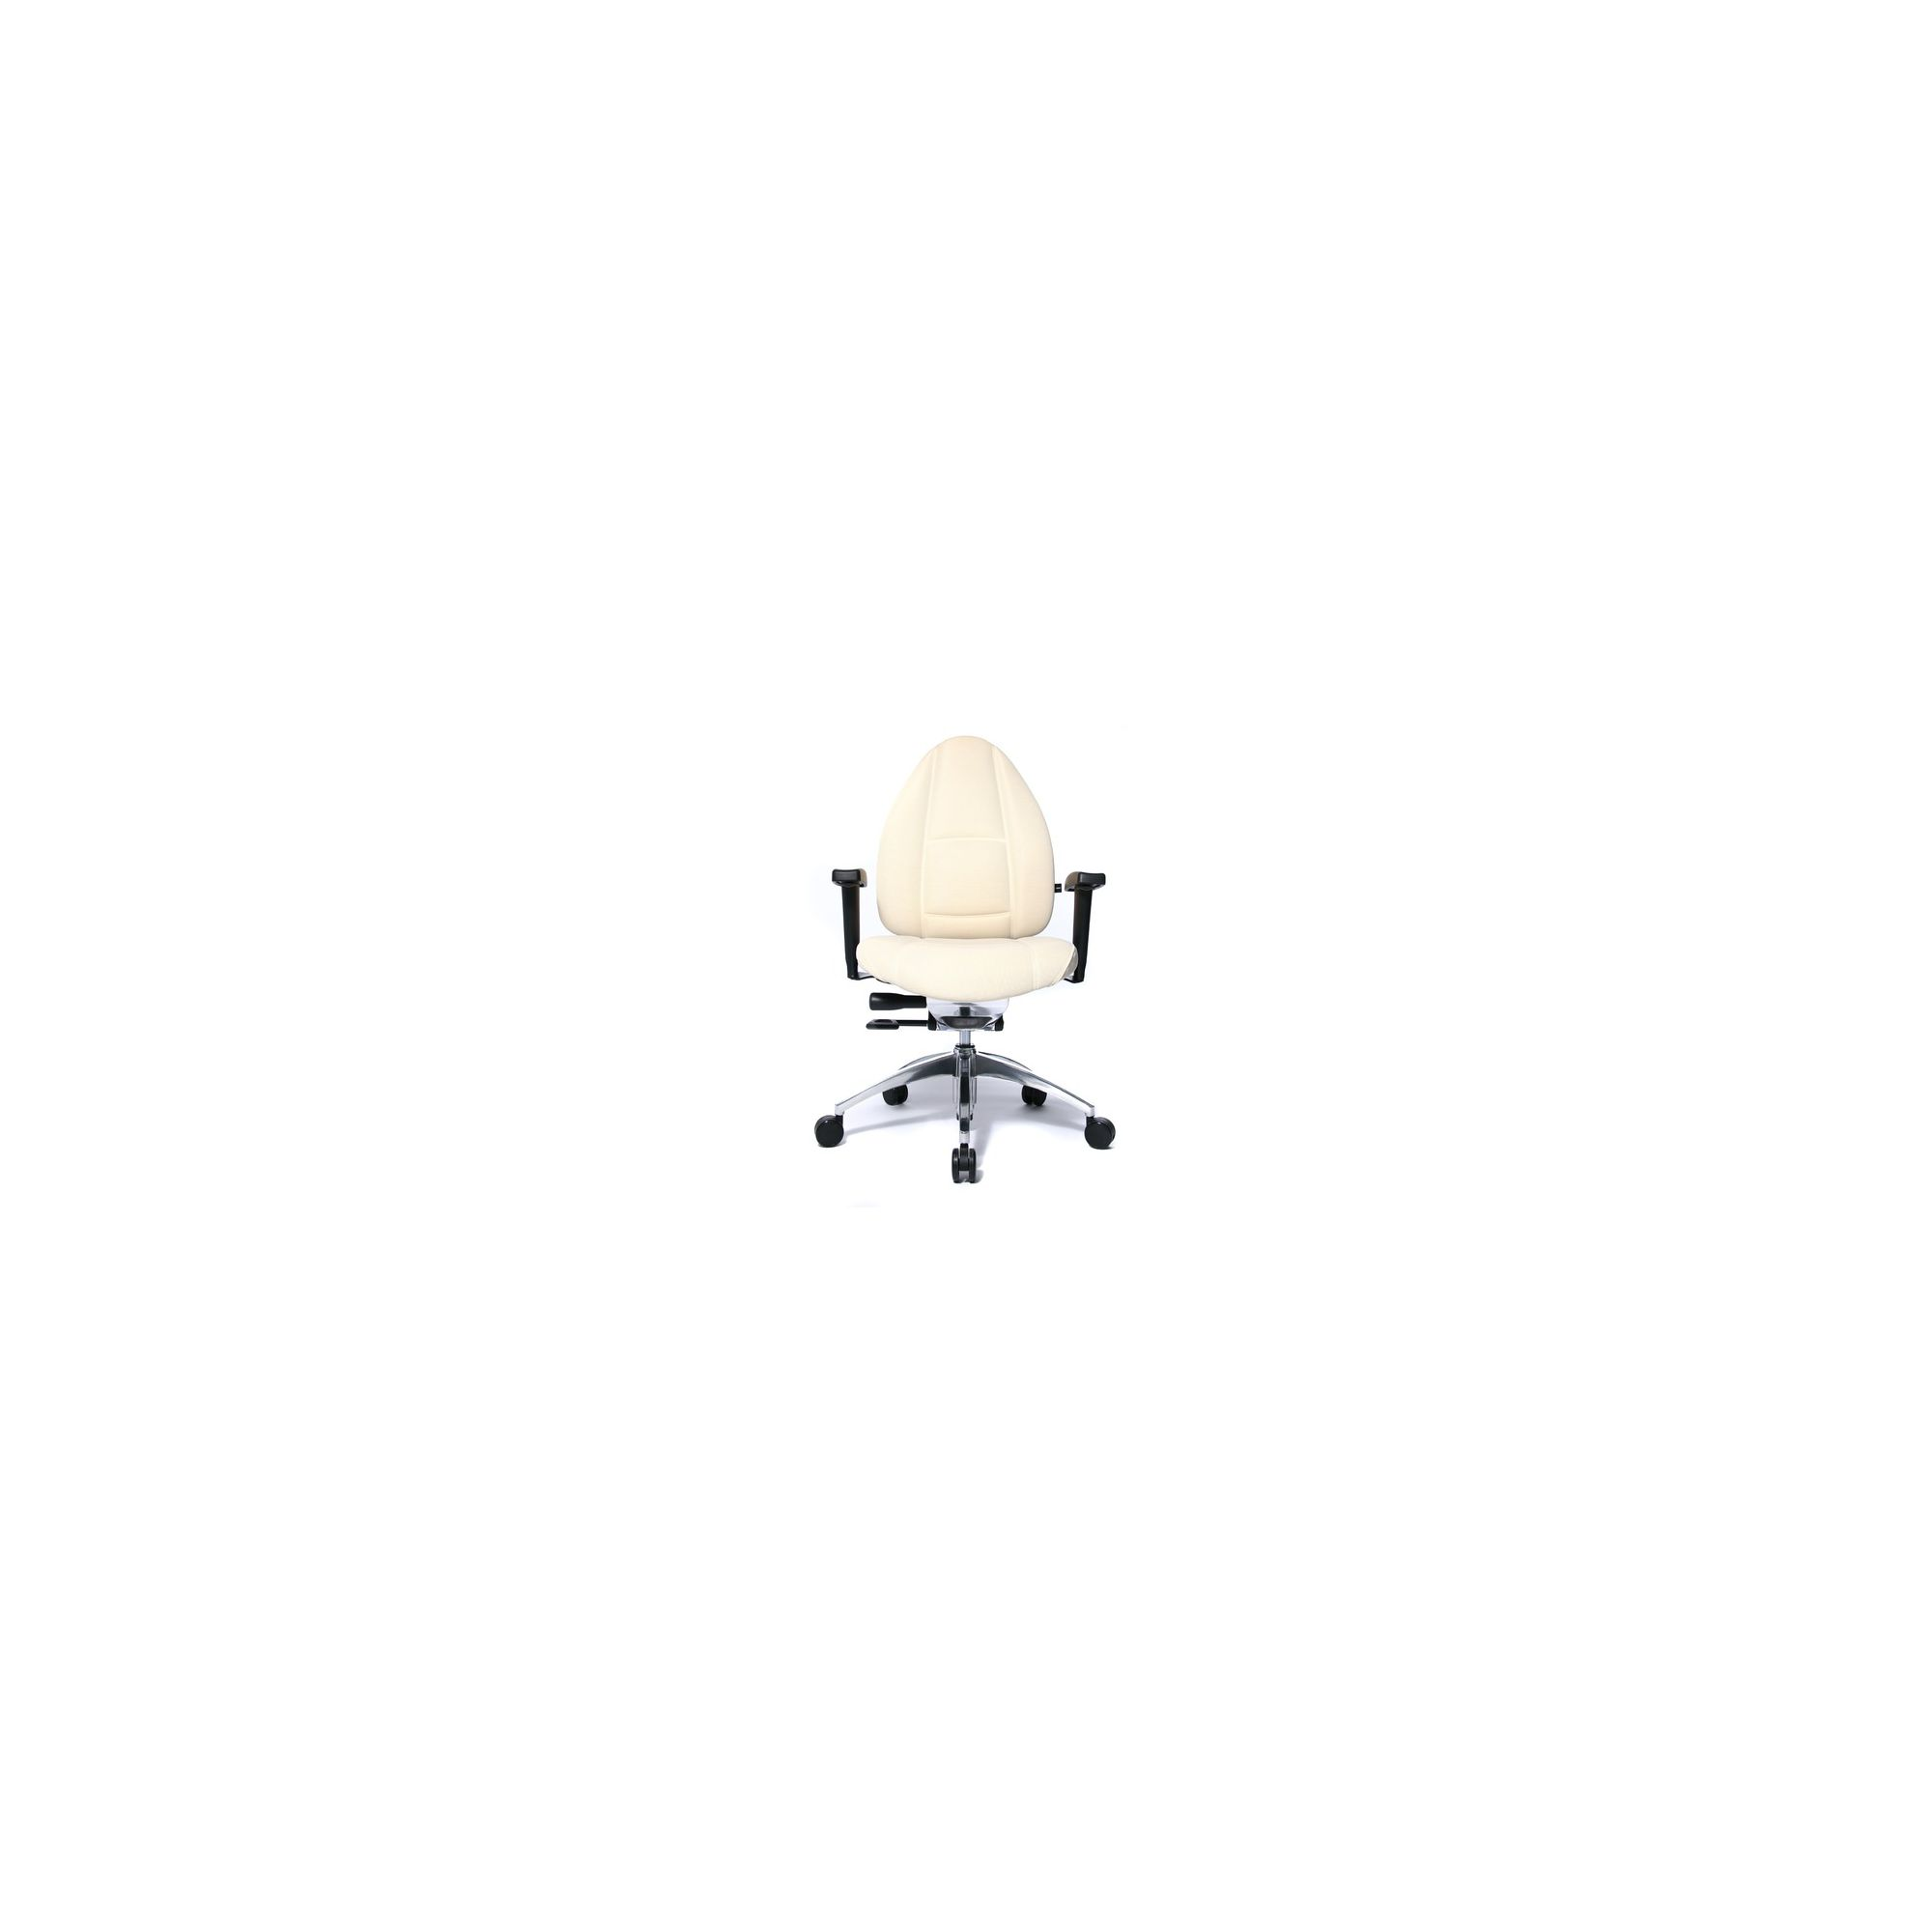 Topstar Open Base S Office Swivel Chair - Black at Tesco Direct